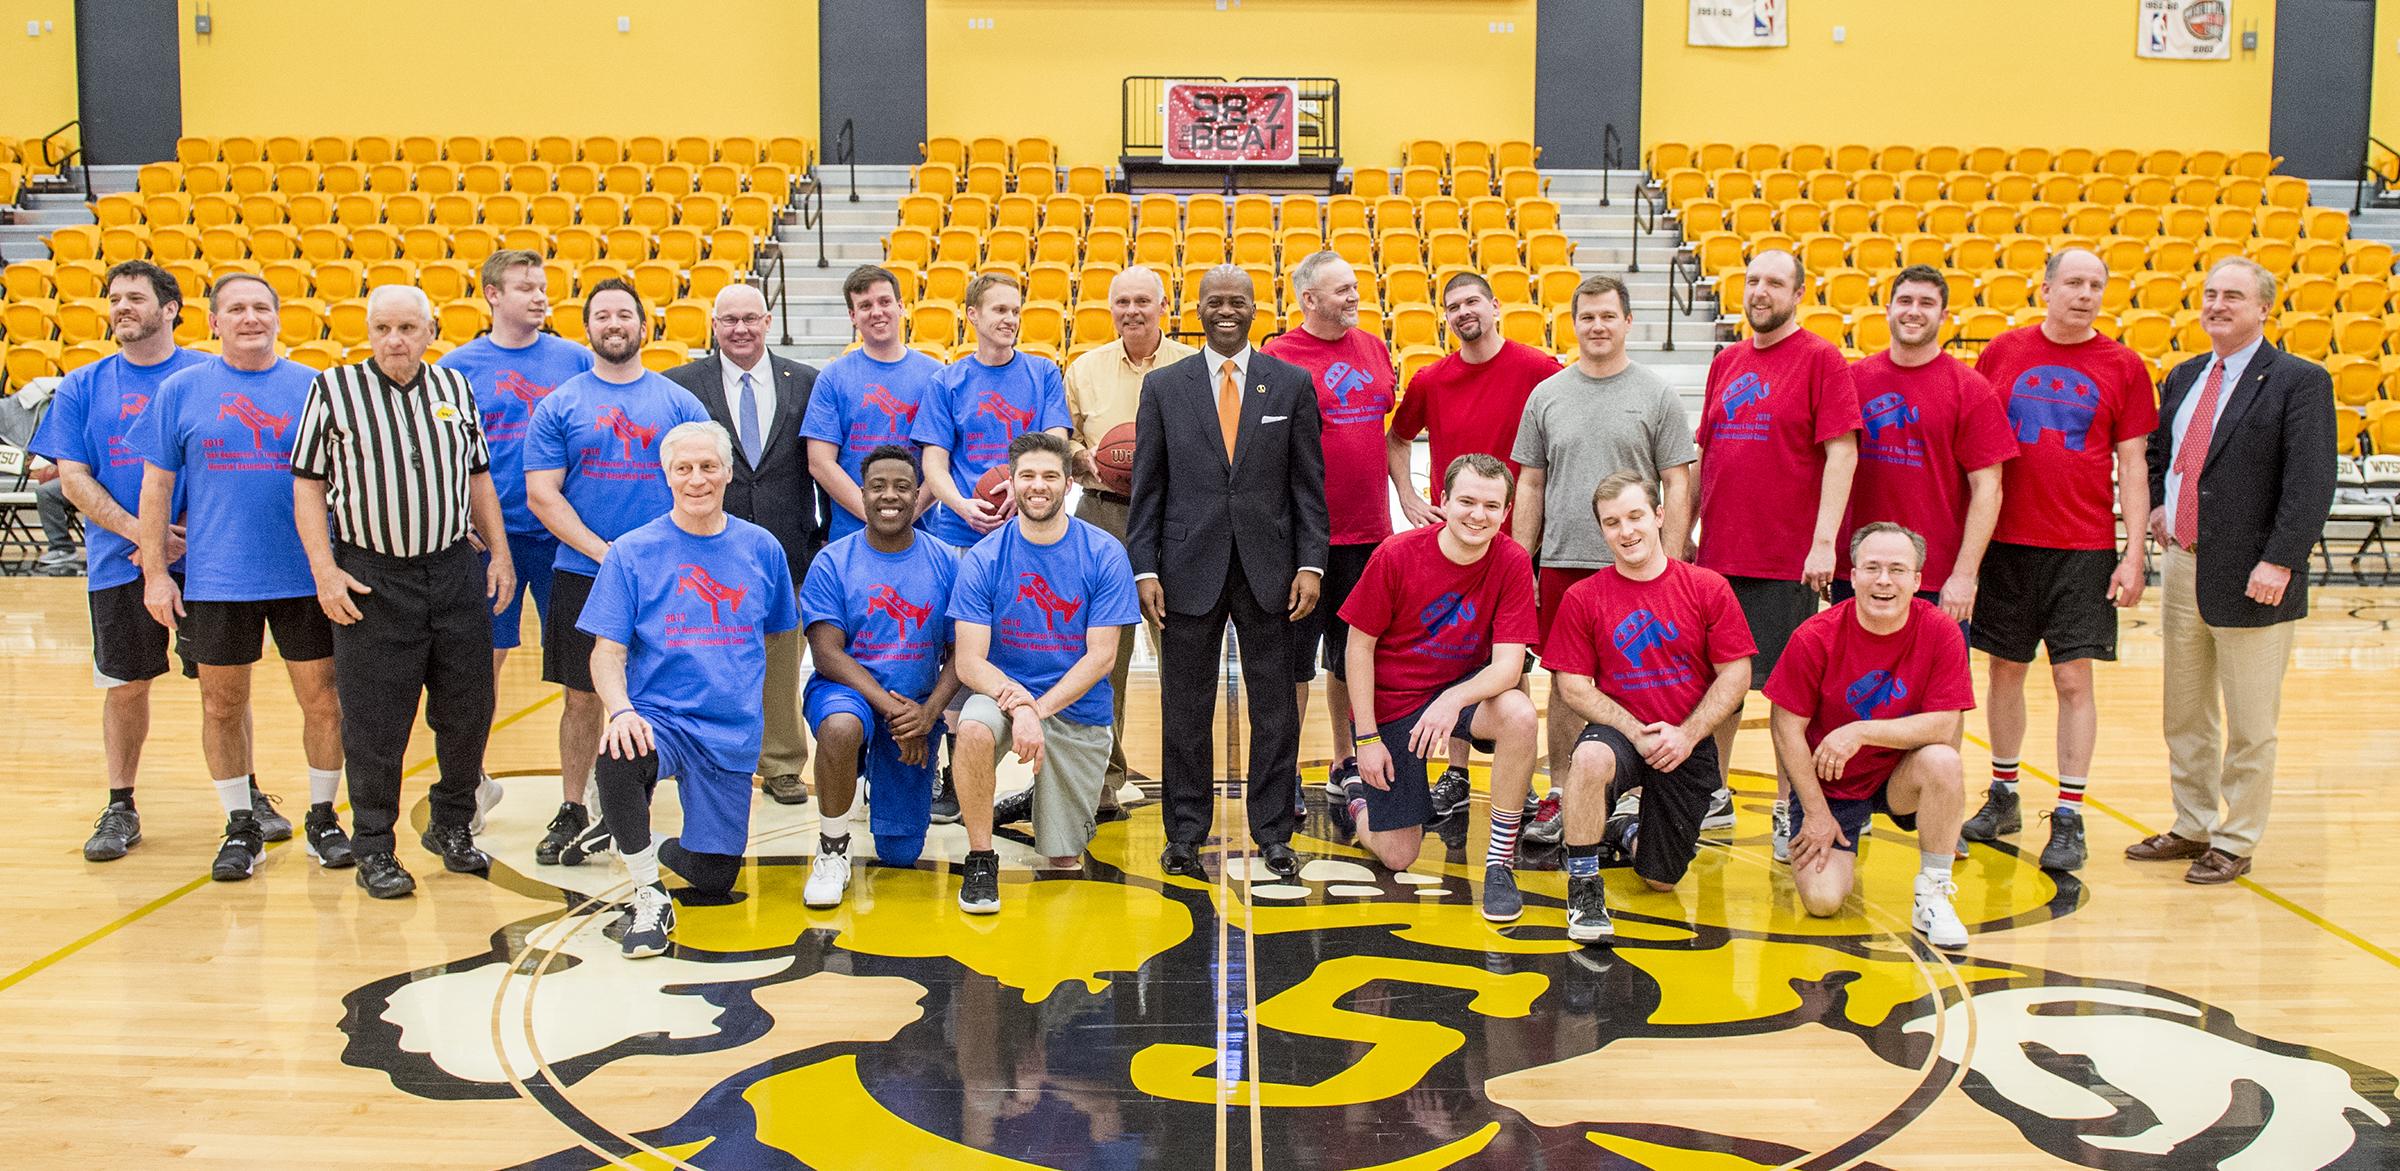 President Jenkins at legislative basketball game